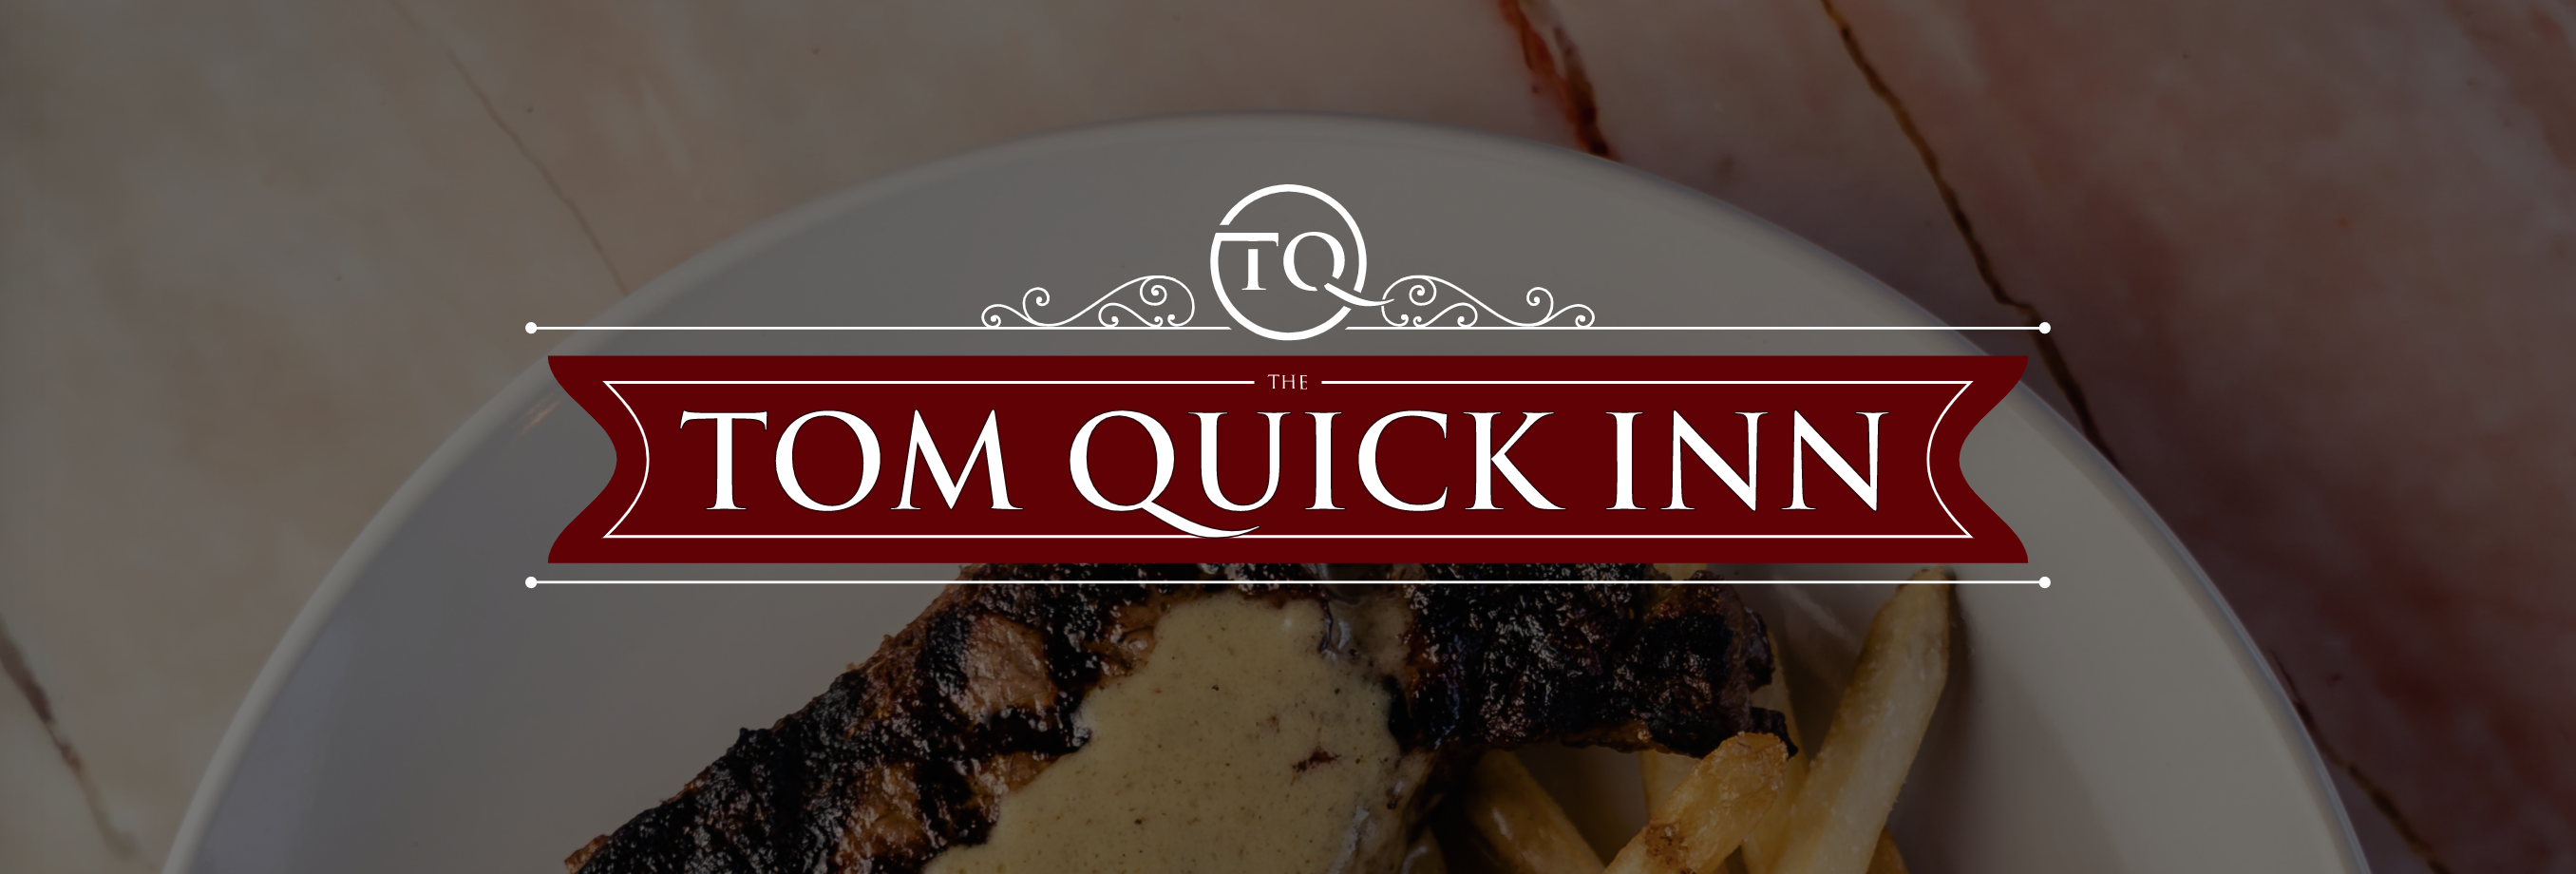 tom quick inn logo over a photo of a plated dinner